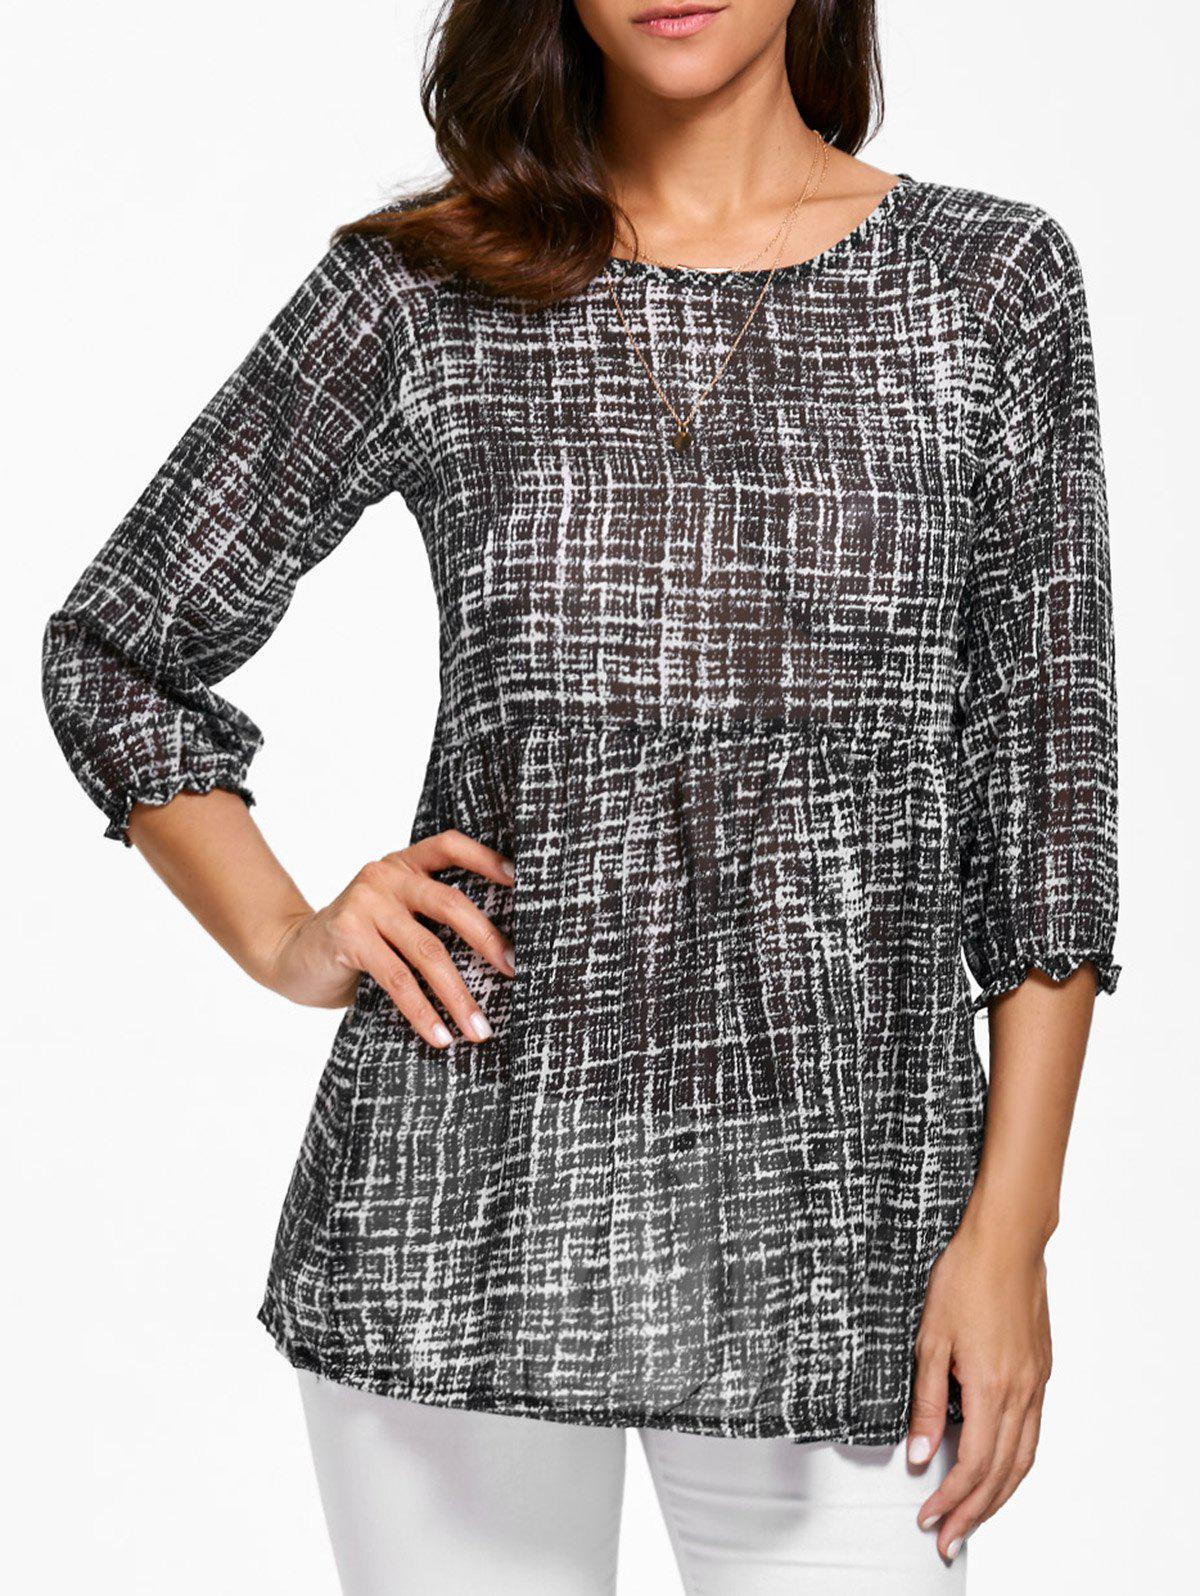 Trendy Style Scoop Collar Abstract Print 3/4 Sleeve T-Shirt For Women - BLACK ONE SIZE